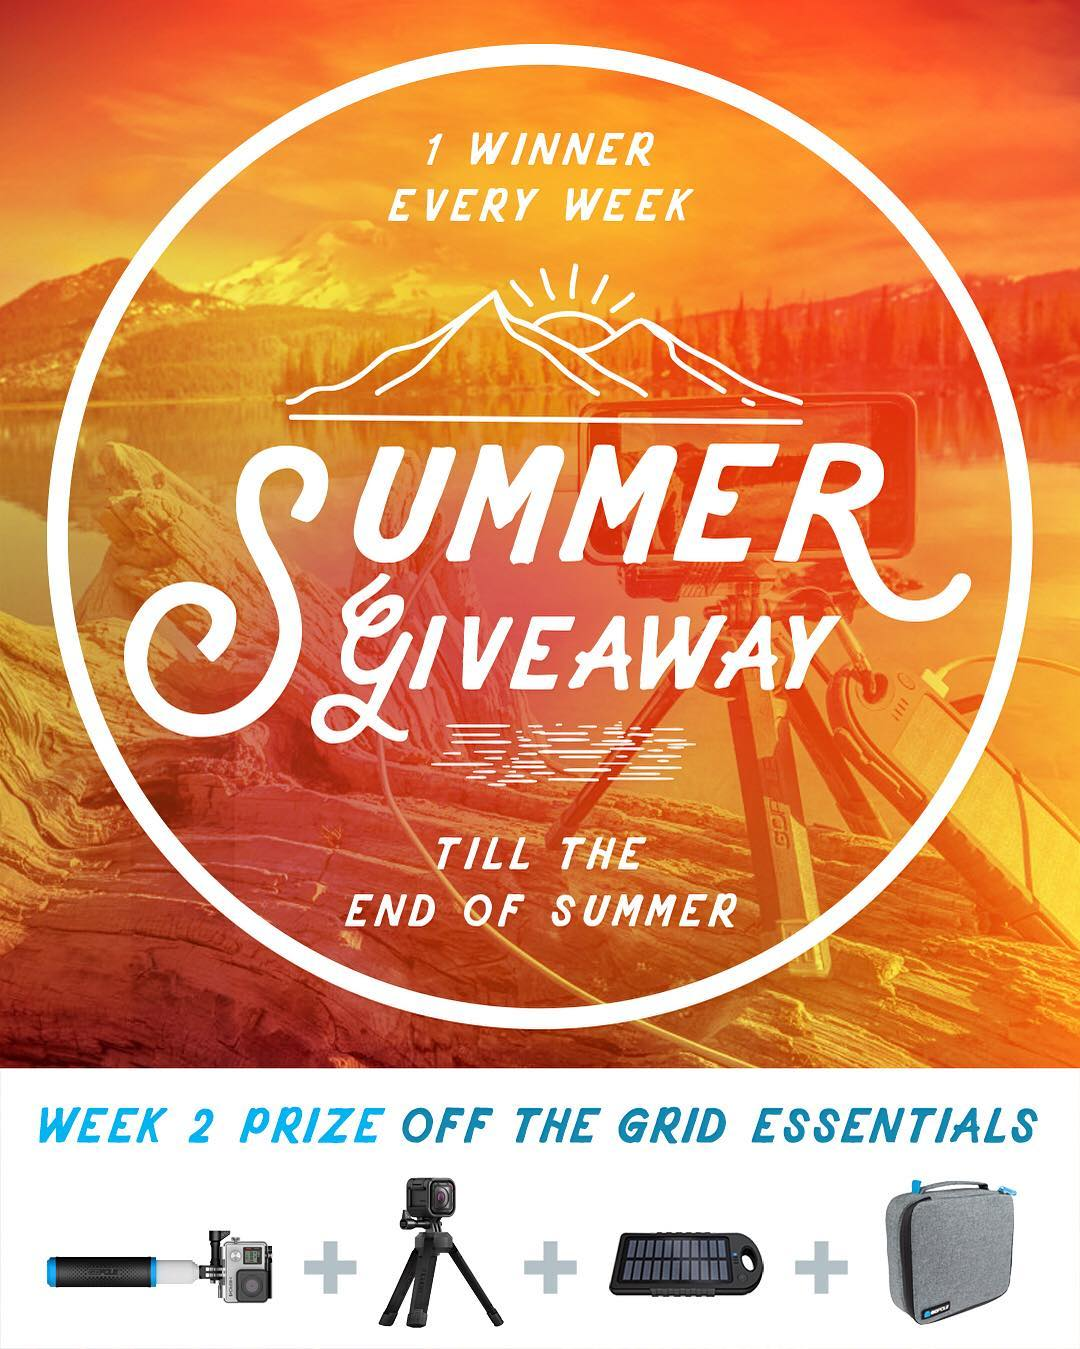 Congrats to week 1 winner, Kaylin Bruce! GoPole Summer Giveaway week 2 prize - Off the Grid Essentials. Enter daily to increase your chances. No purchase necessary, enter once or enter every day to increase your changes of winning. Enter now by...